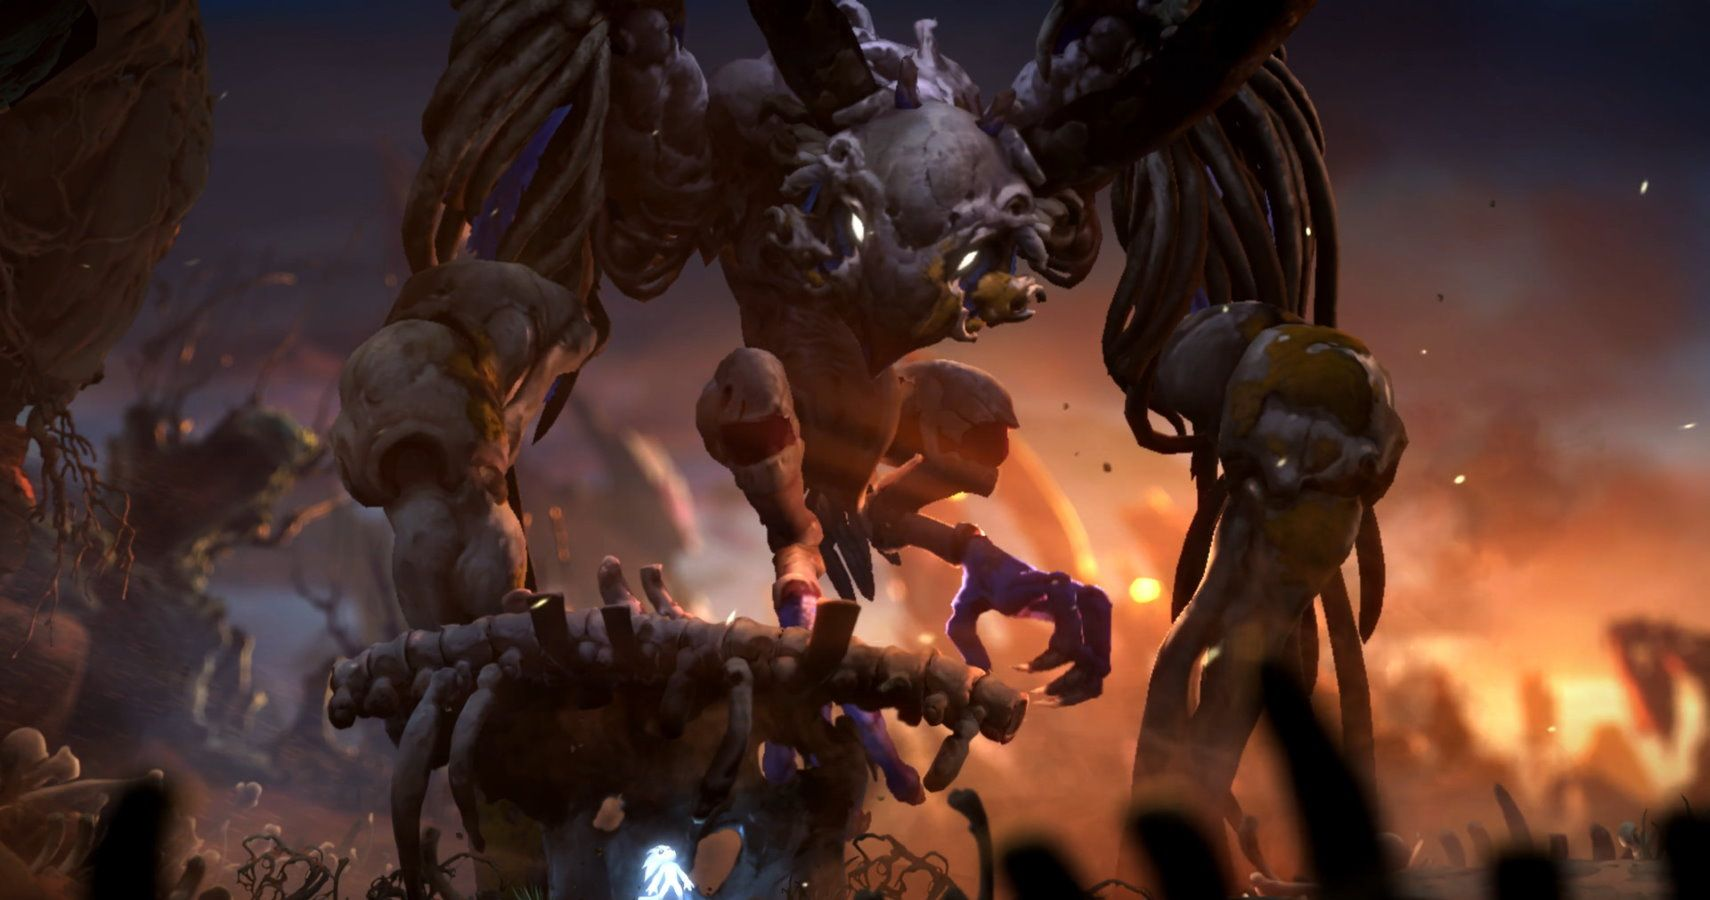 Ori And The Will Of The Wisps' Story Was Reverse-Engineered From The Final Boss Fight